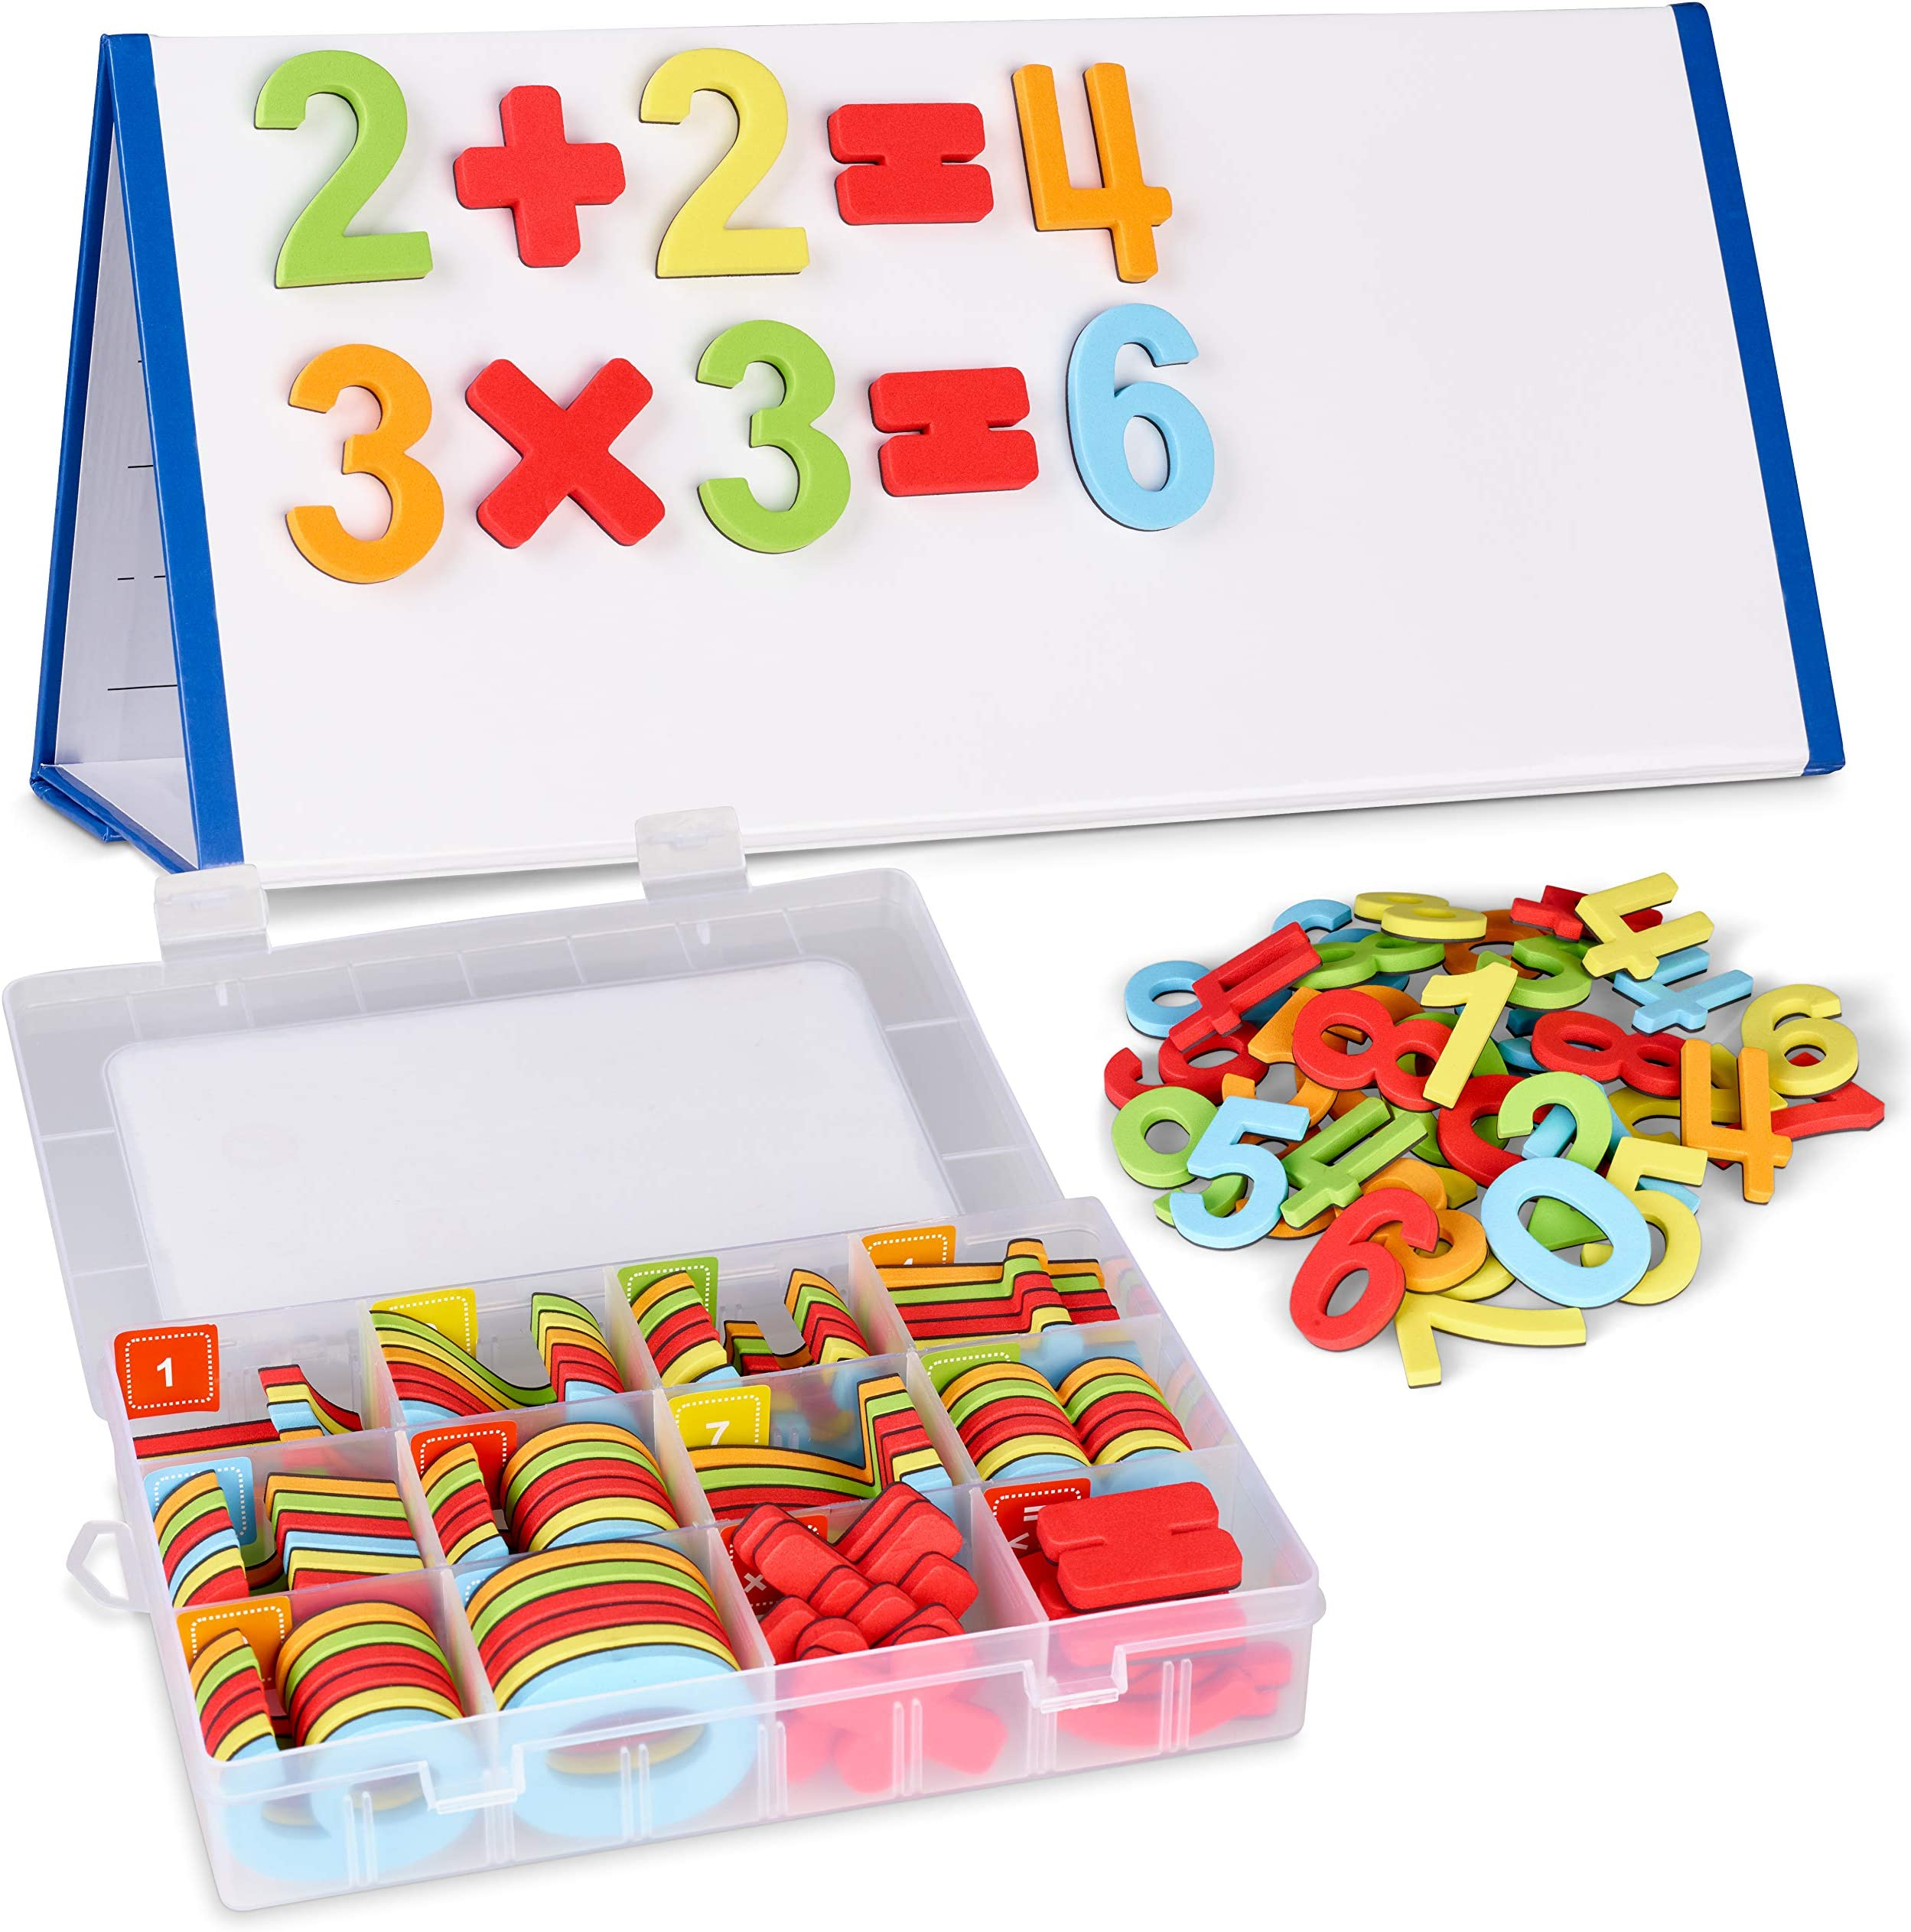 Magnetic Numbers Set TWO SETS INCLUDED IN THE PRICE!!!